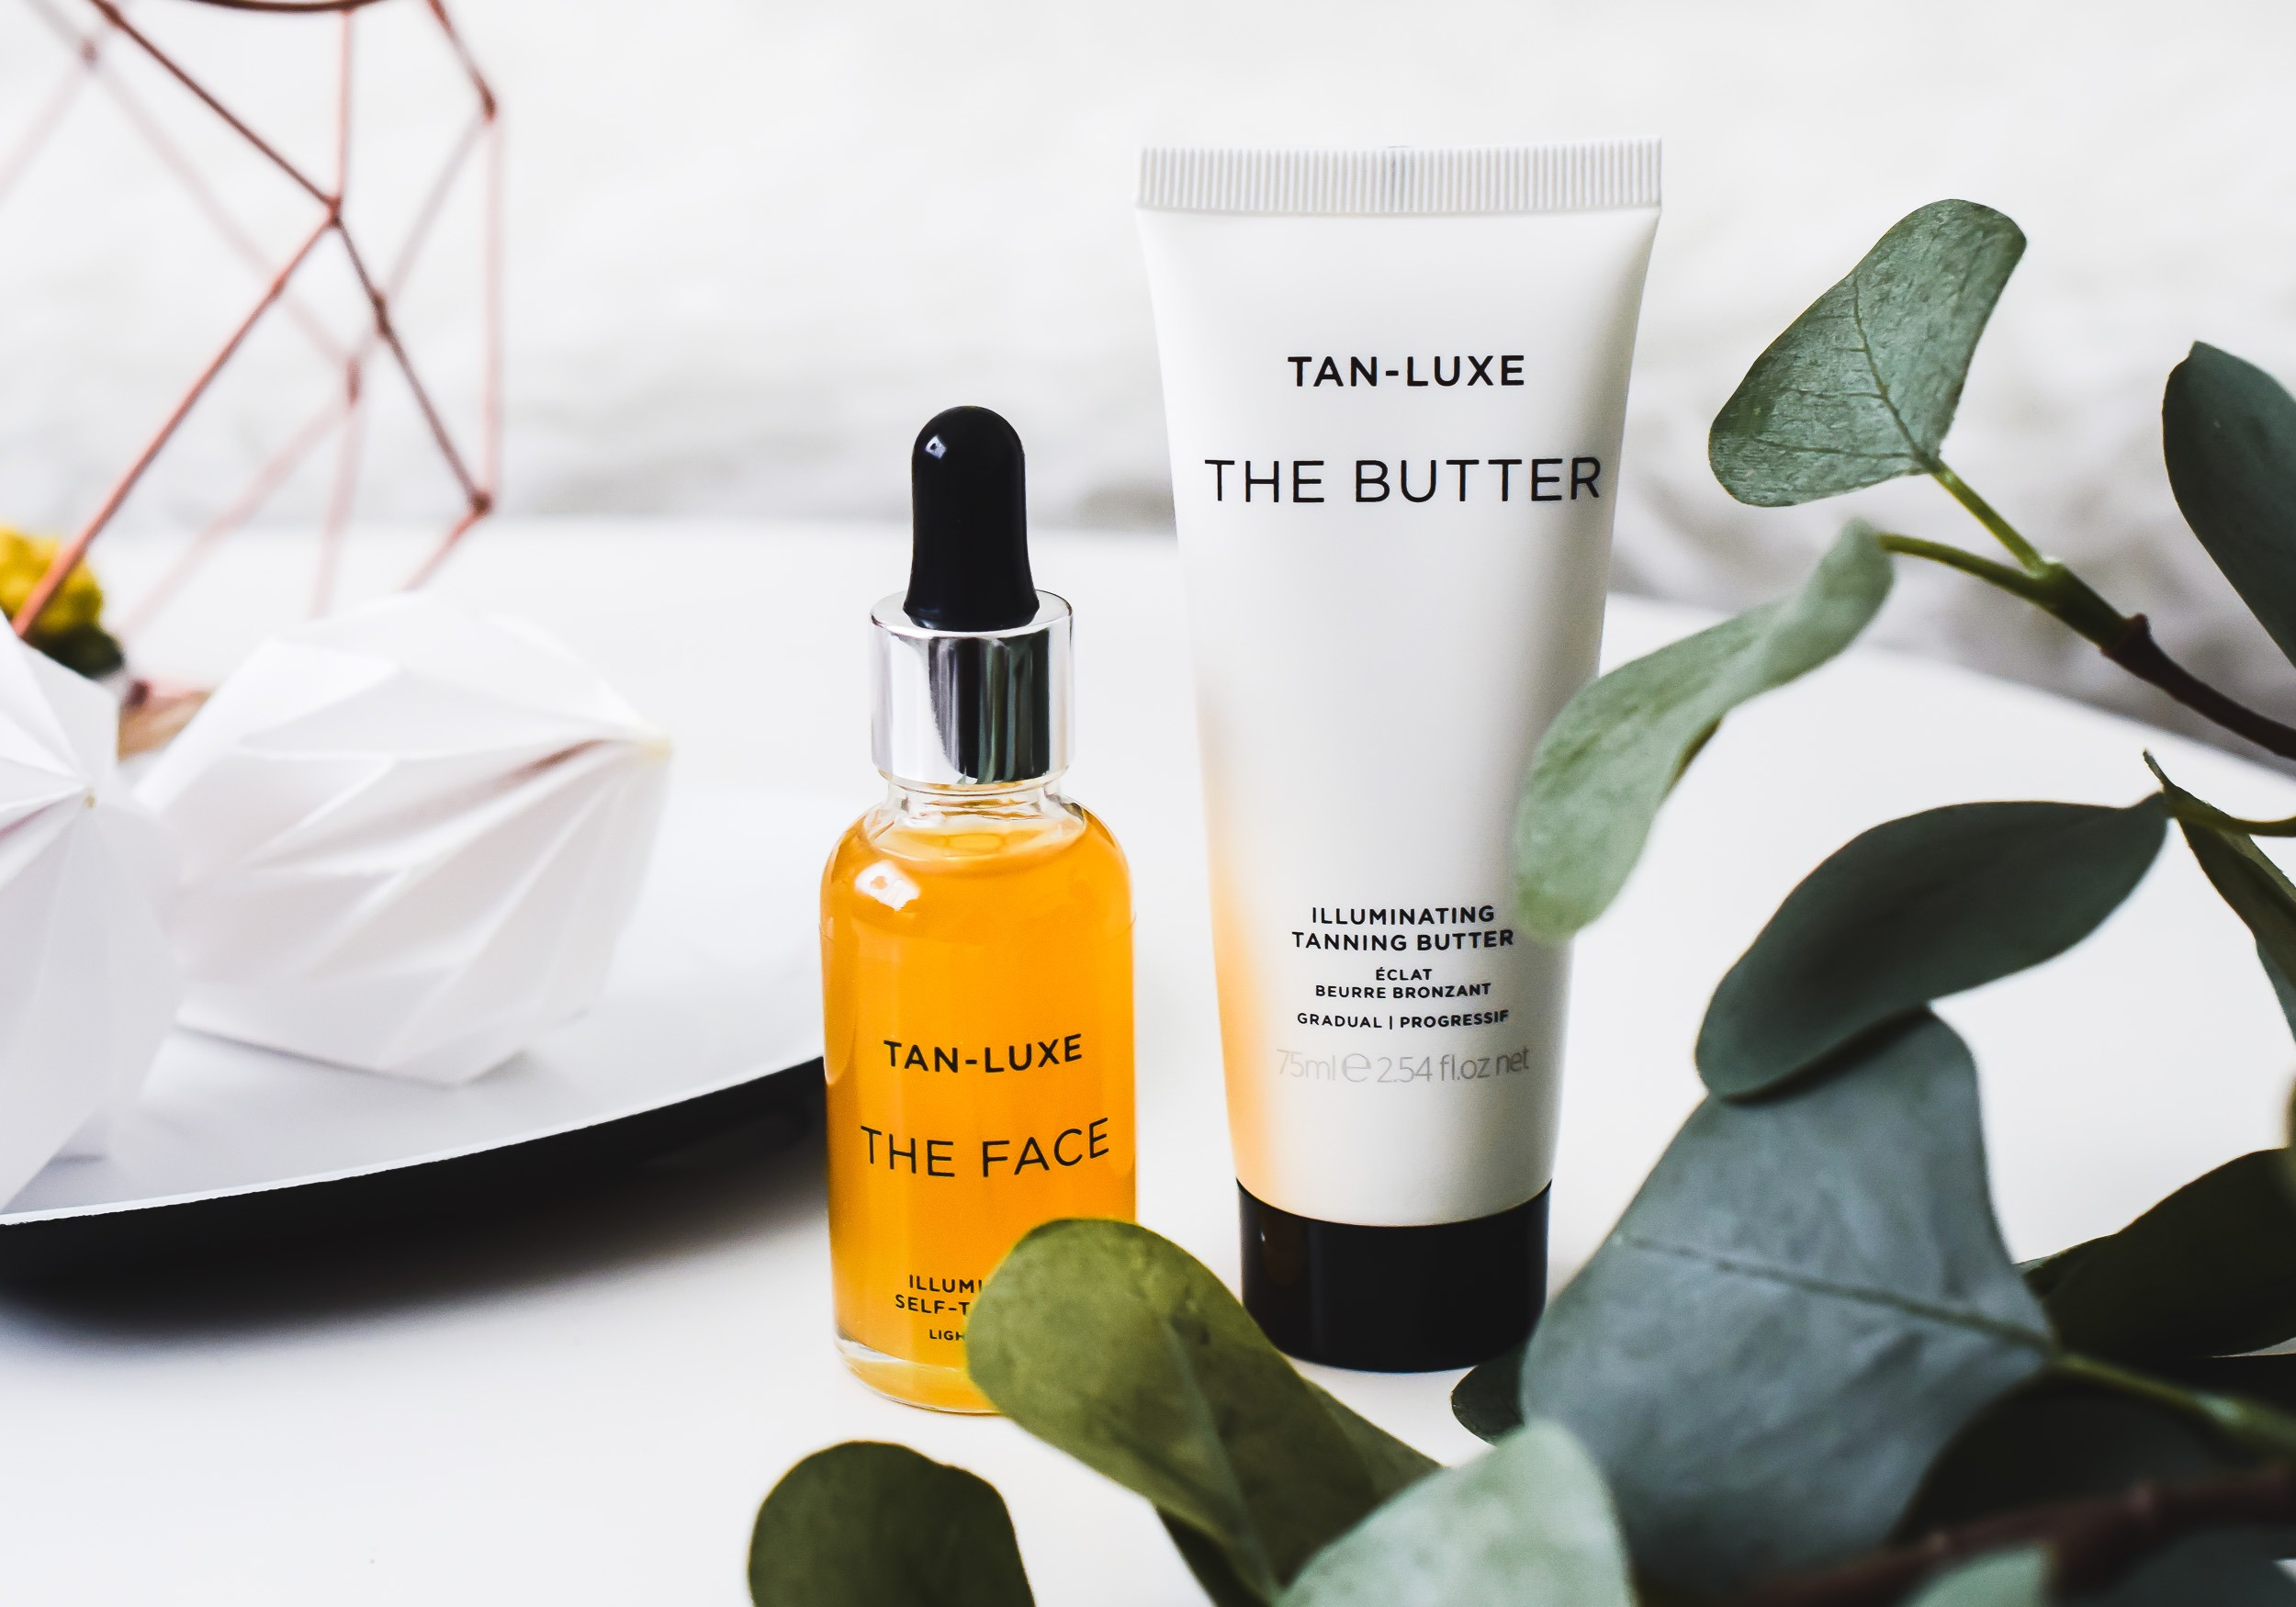 TAN-LUXE The Face & The Butter